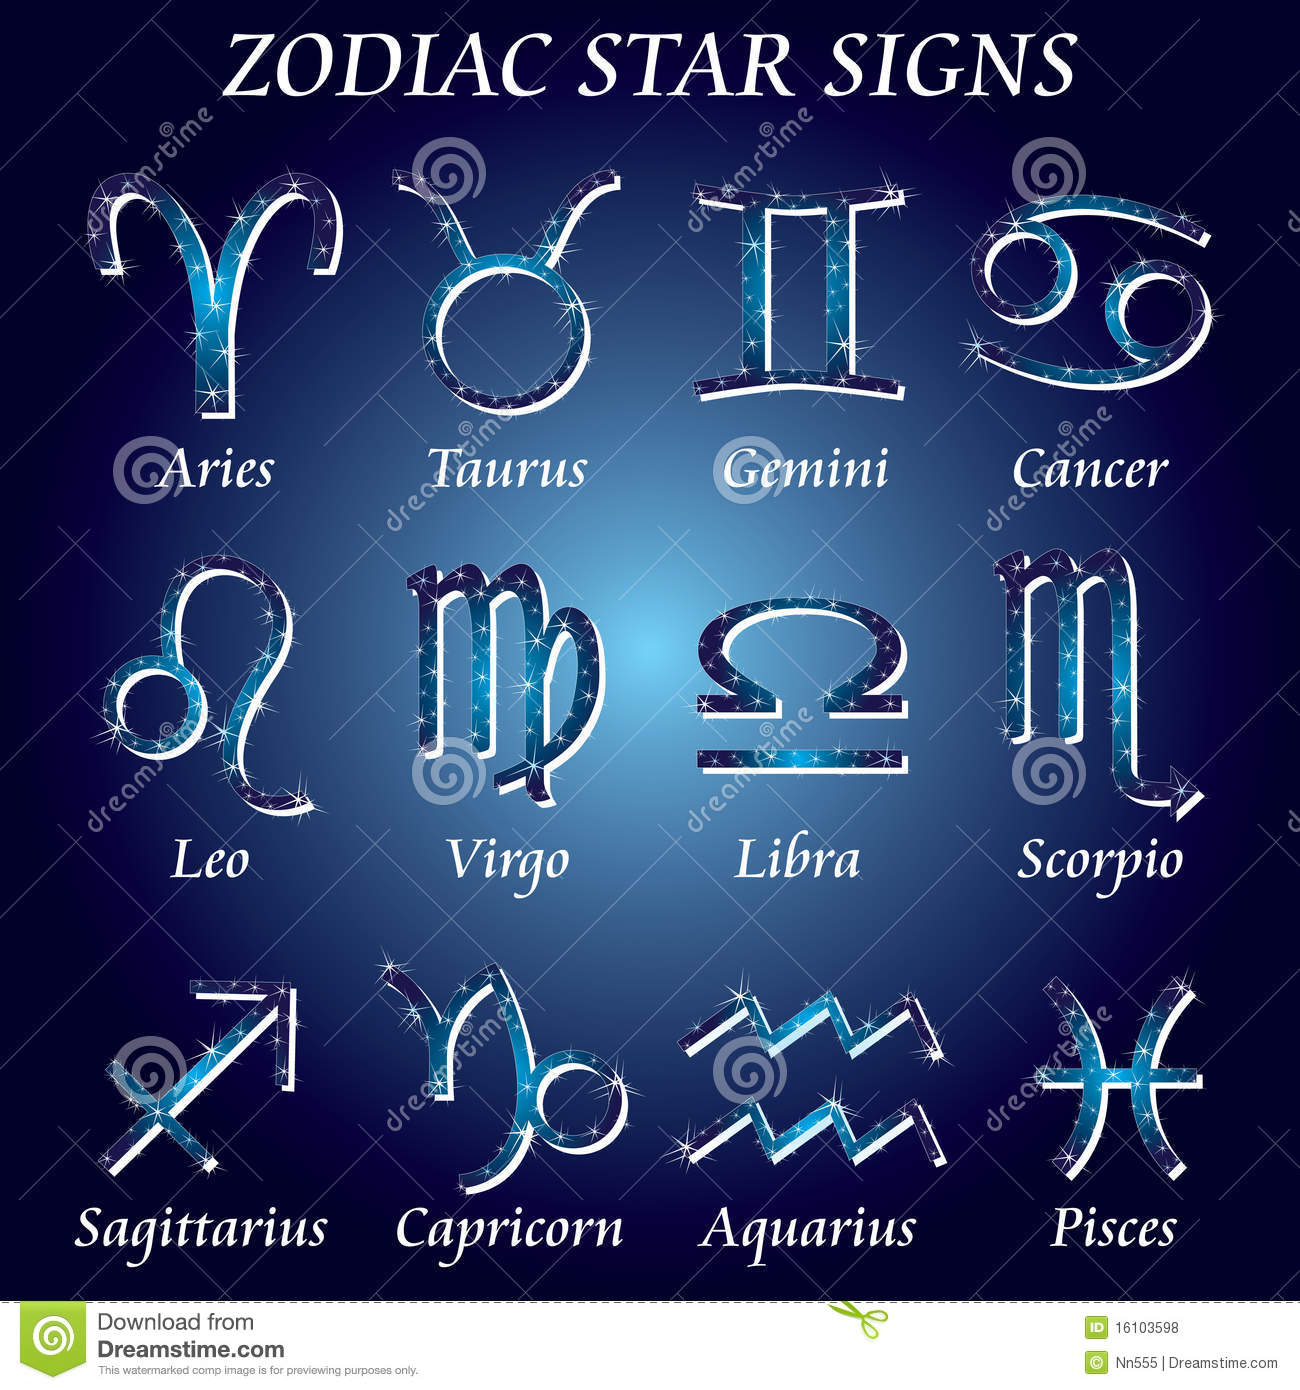 Zodiac sign has best fashion sense Fashion and Your Zodiac Sign- Find out what. - U Style Magazine